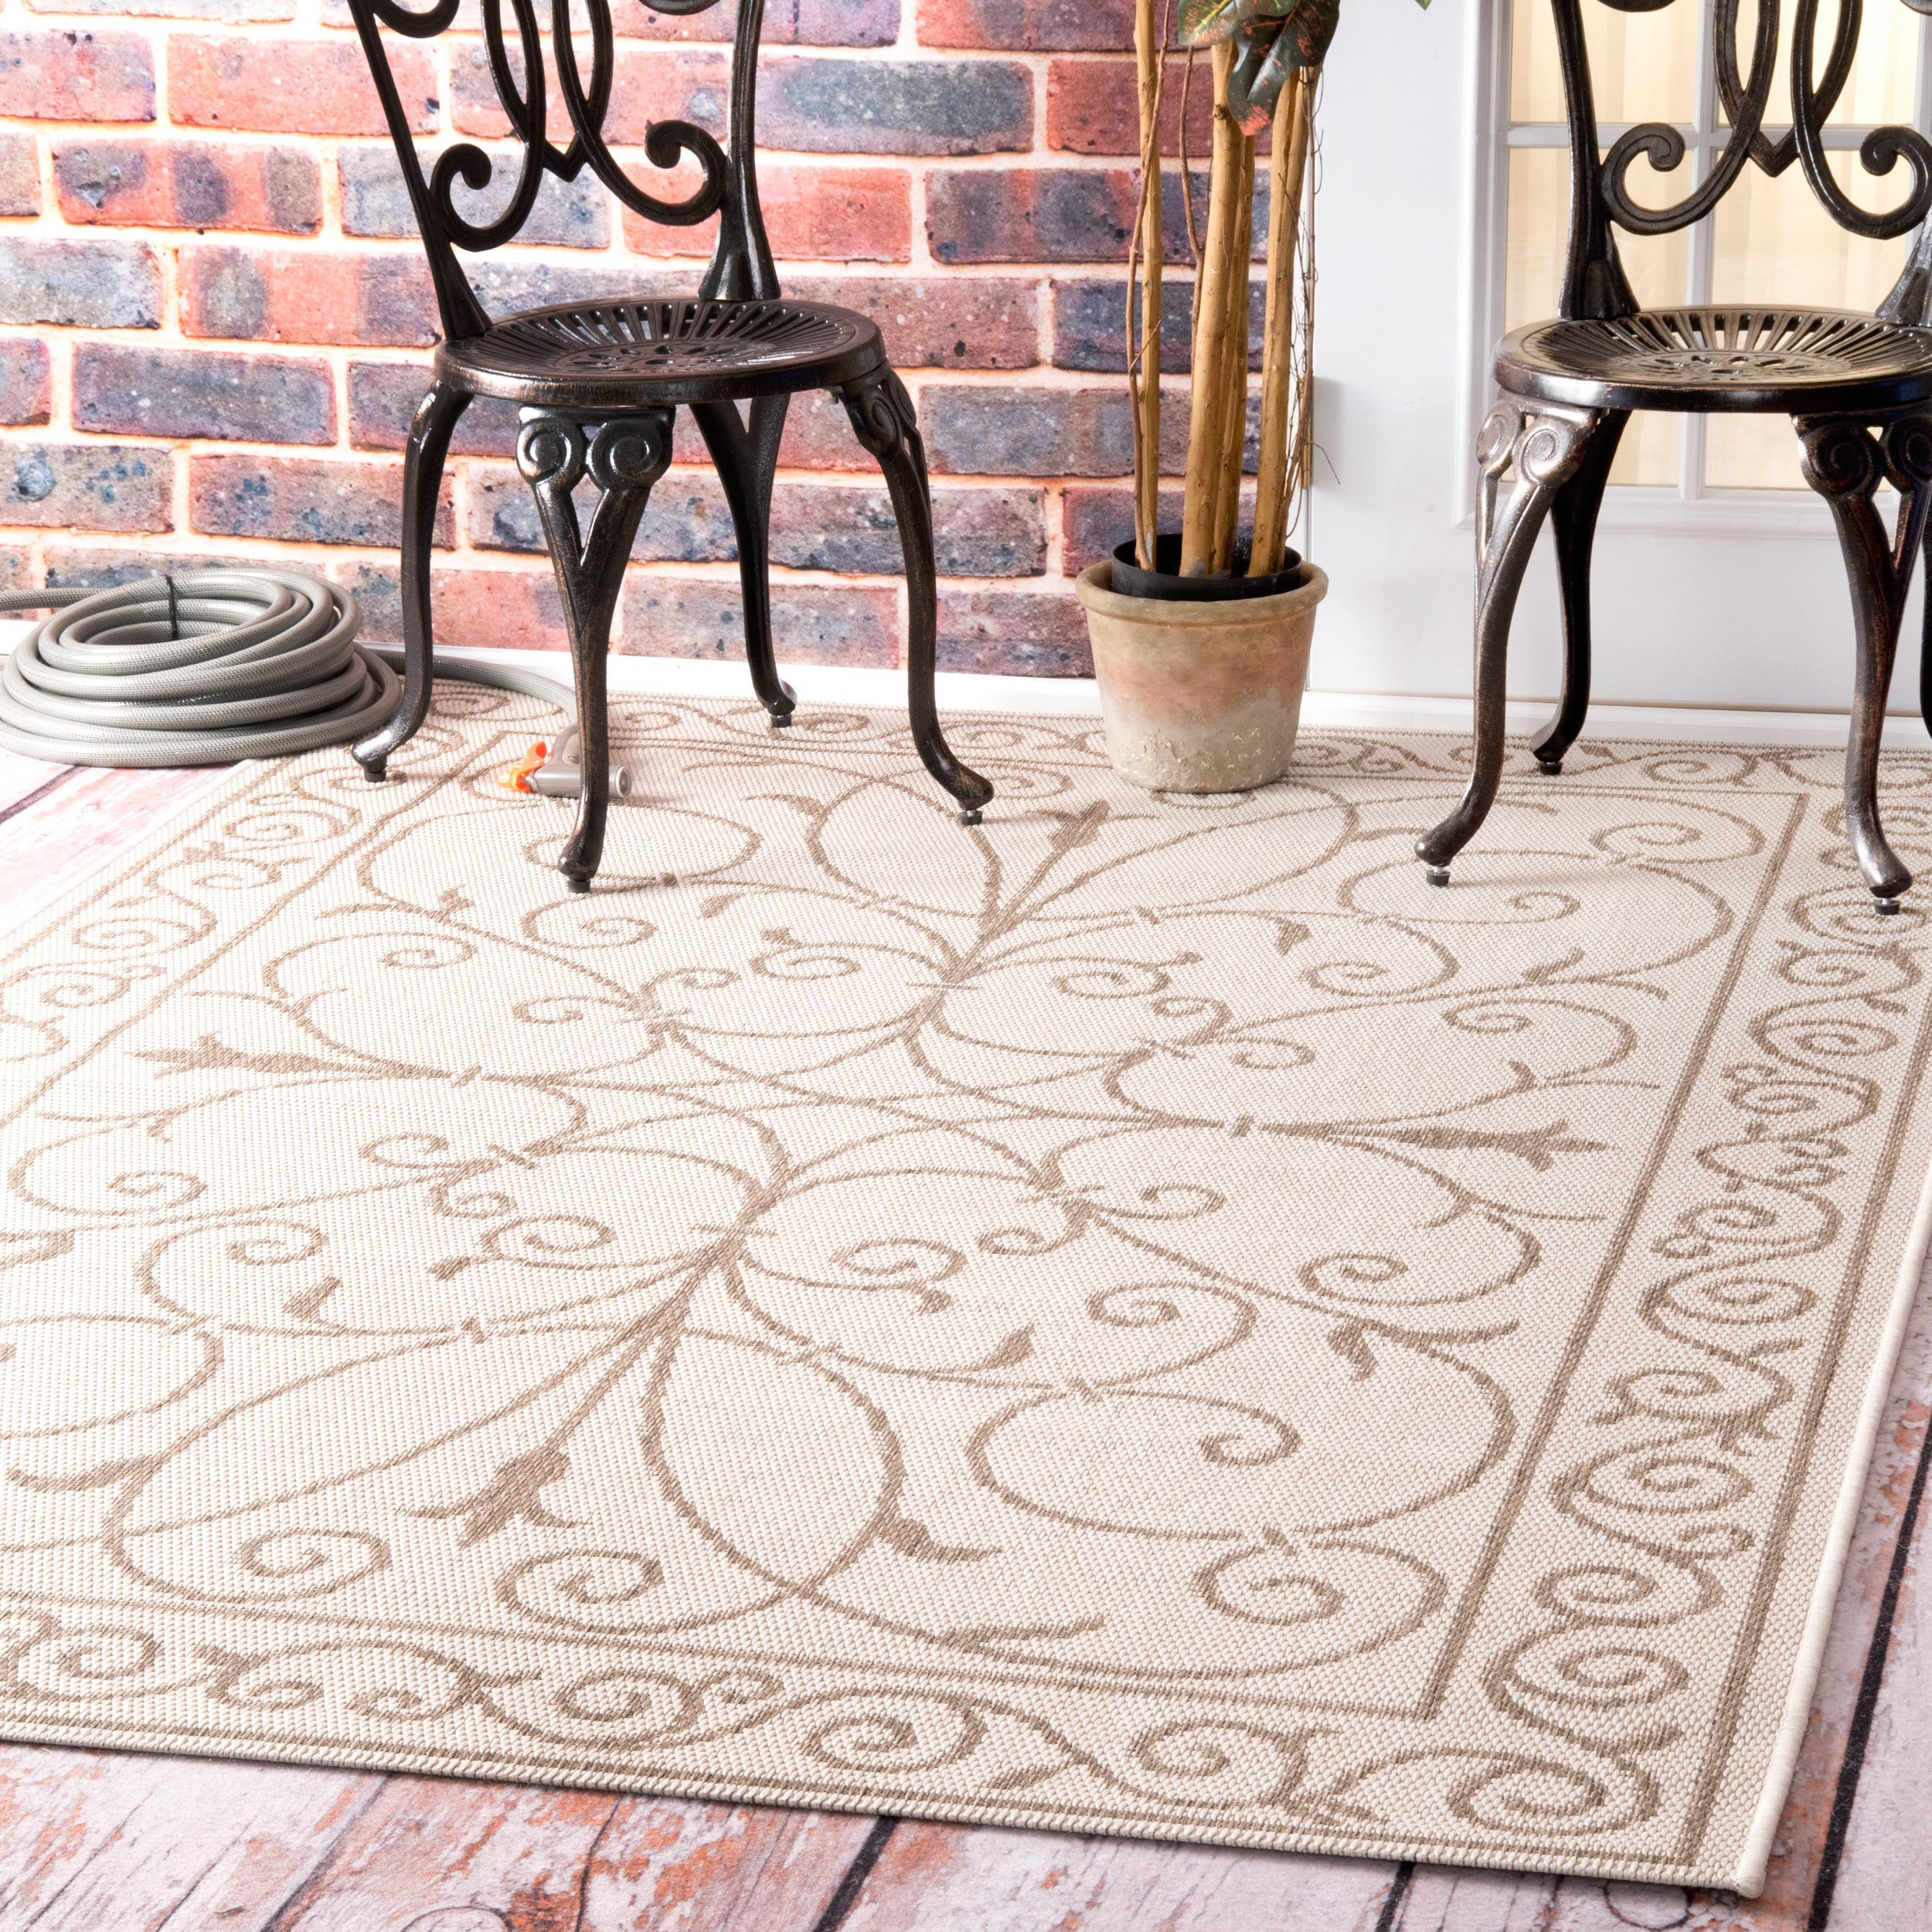 nuLOOM Large nuLOOM Outdoor/ Indoor Rug (8' x 11') at Sears.com